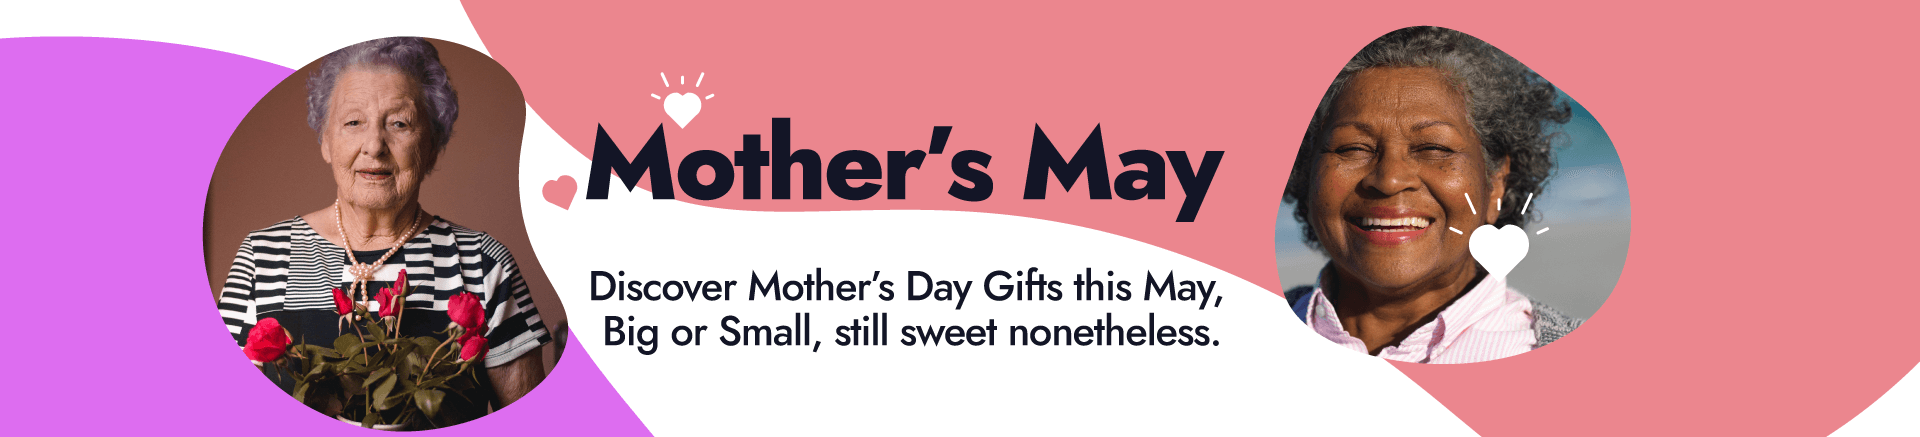 Mother's May 1